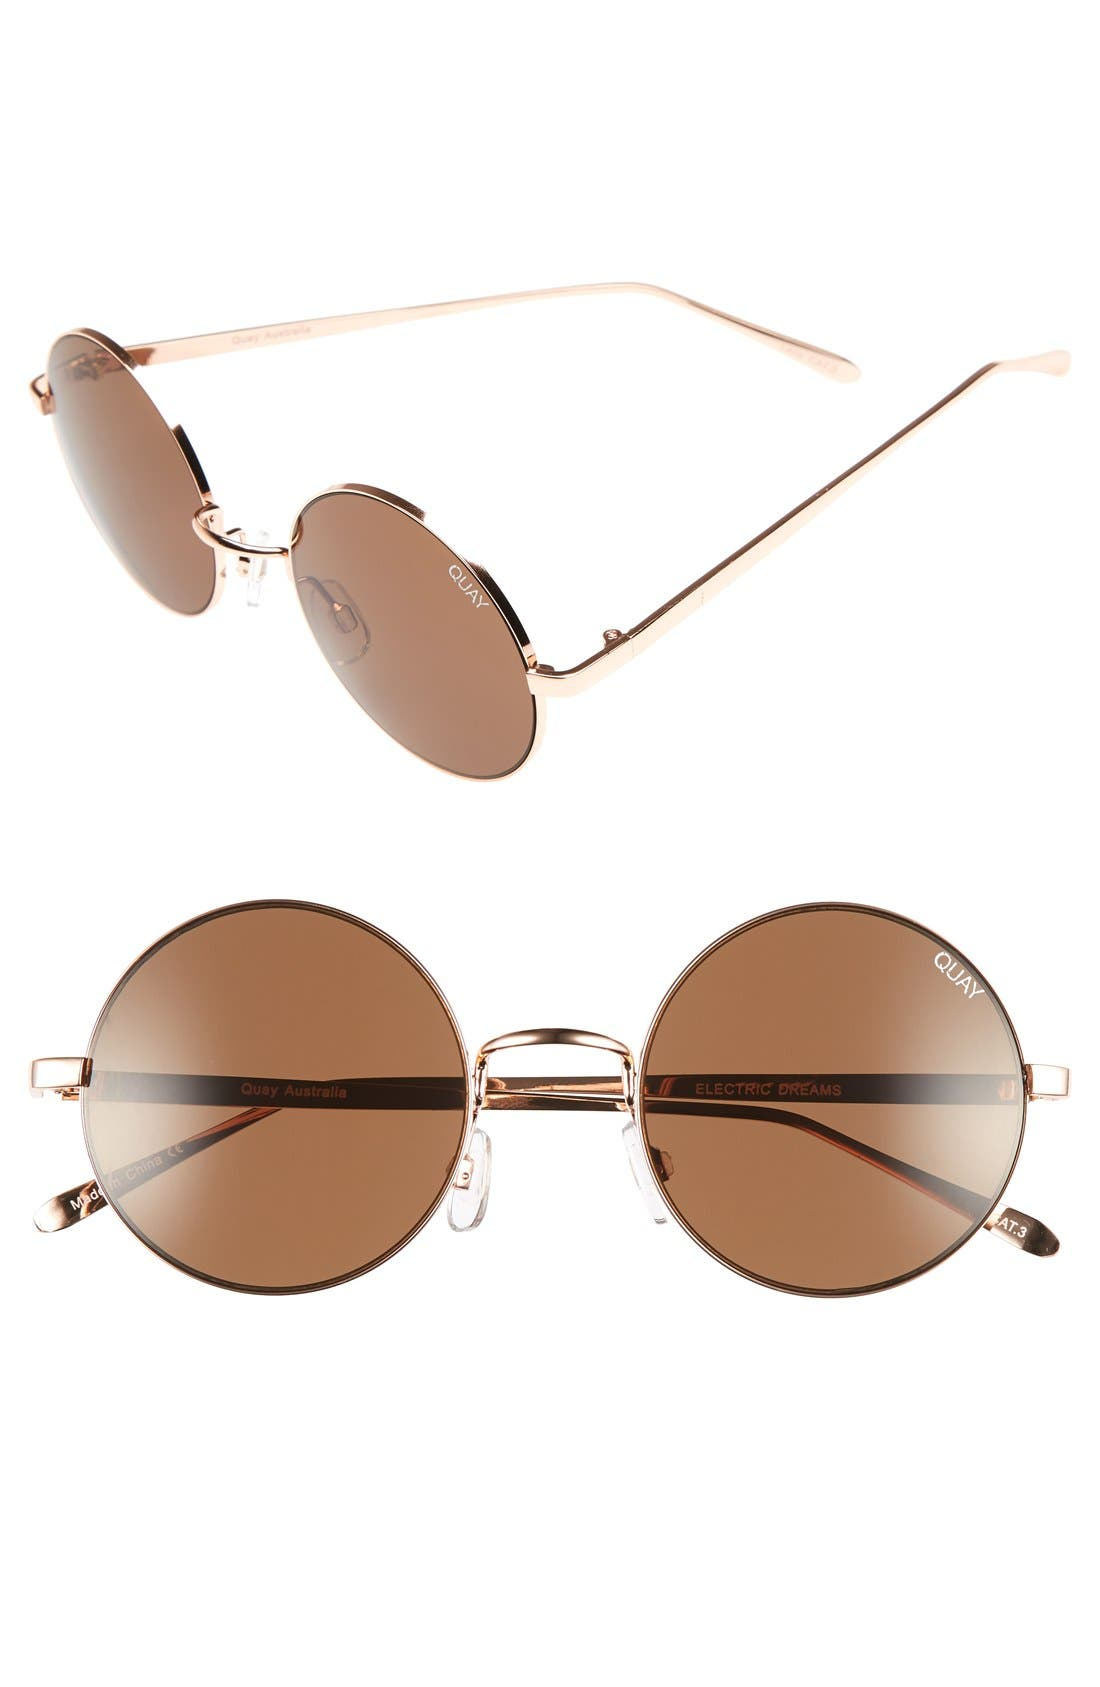 Quay Australia 'Electric Dreams' 52mm Round Sunglasses